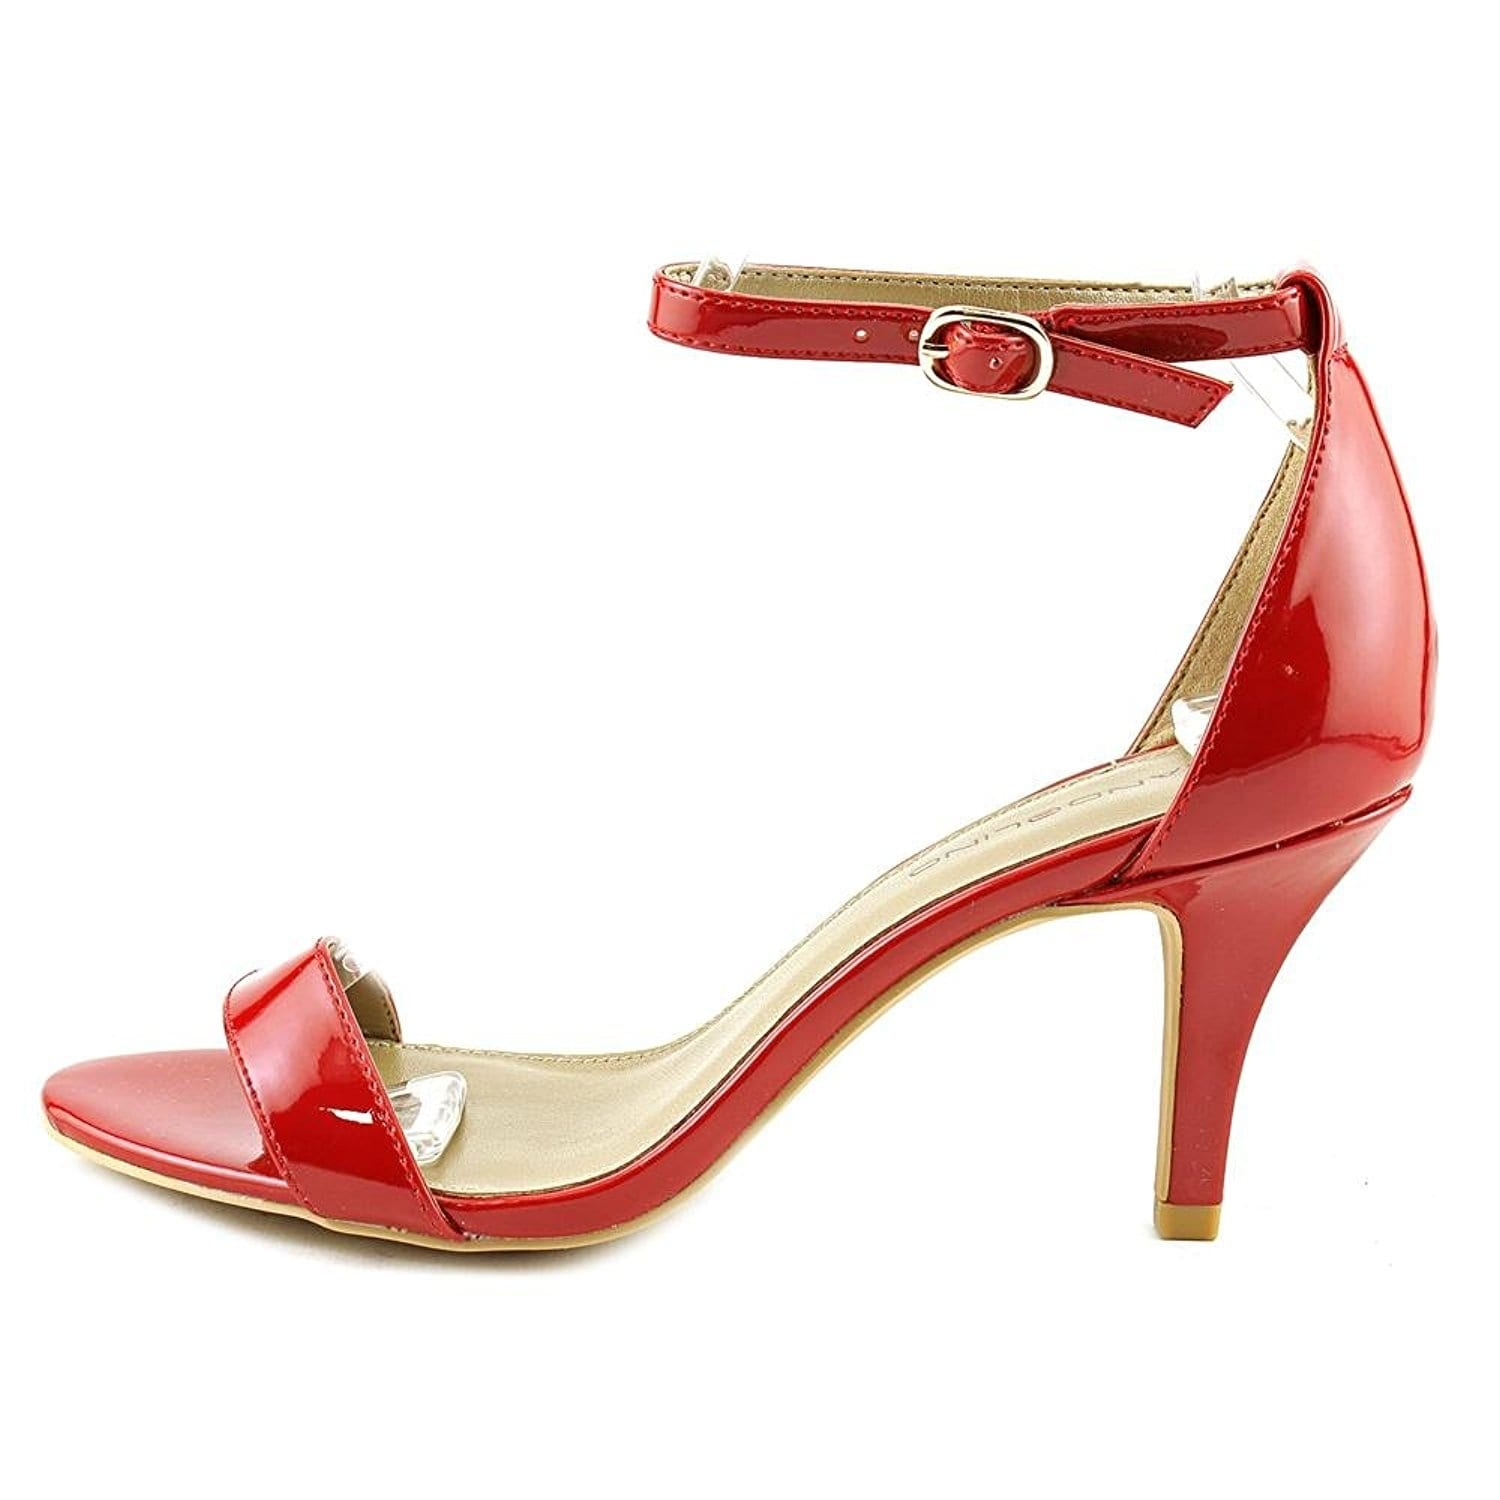 ce2ae0ded5 Shop Bandolino Womens Madia Open Toe Ankle Strap D-orsay Pumps - Free  Shipping Today - Overstock - 15268302